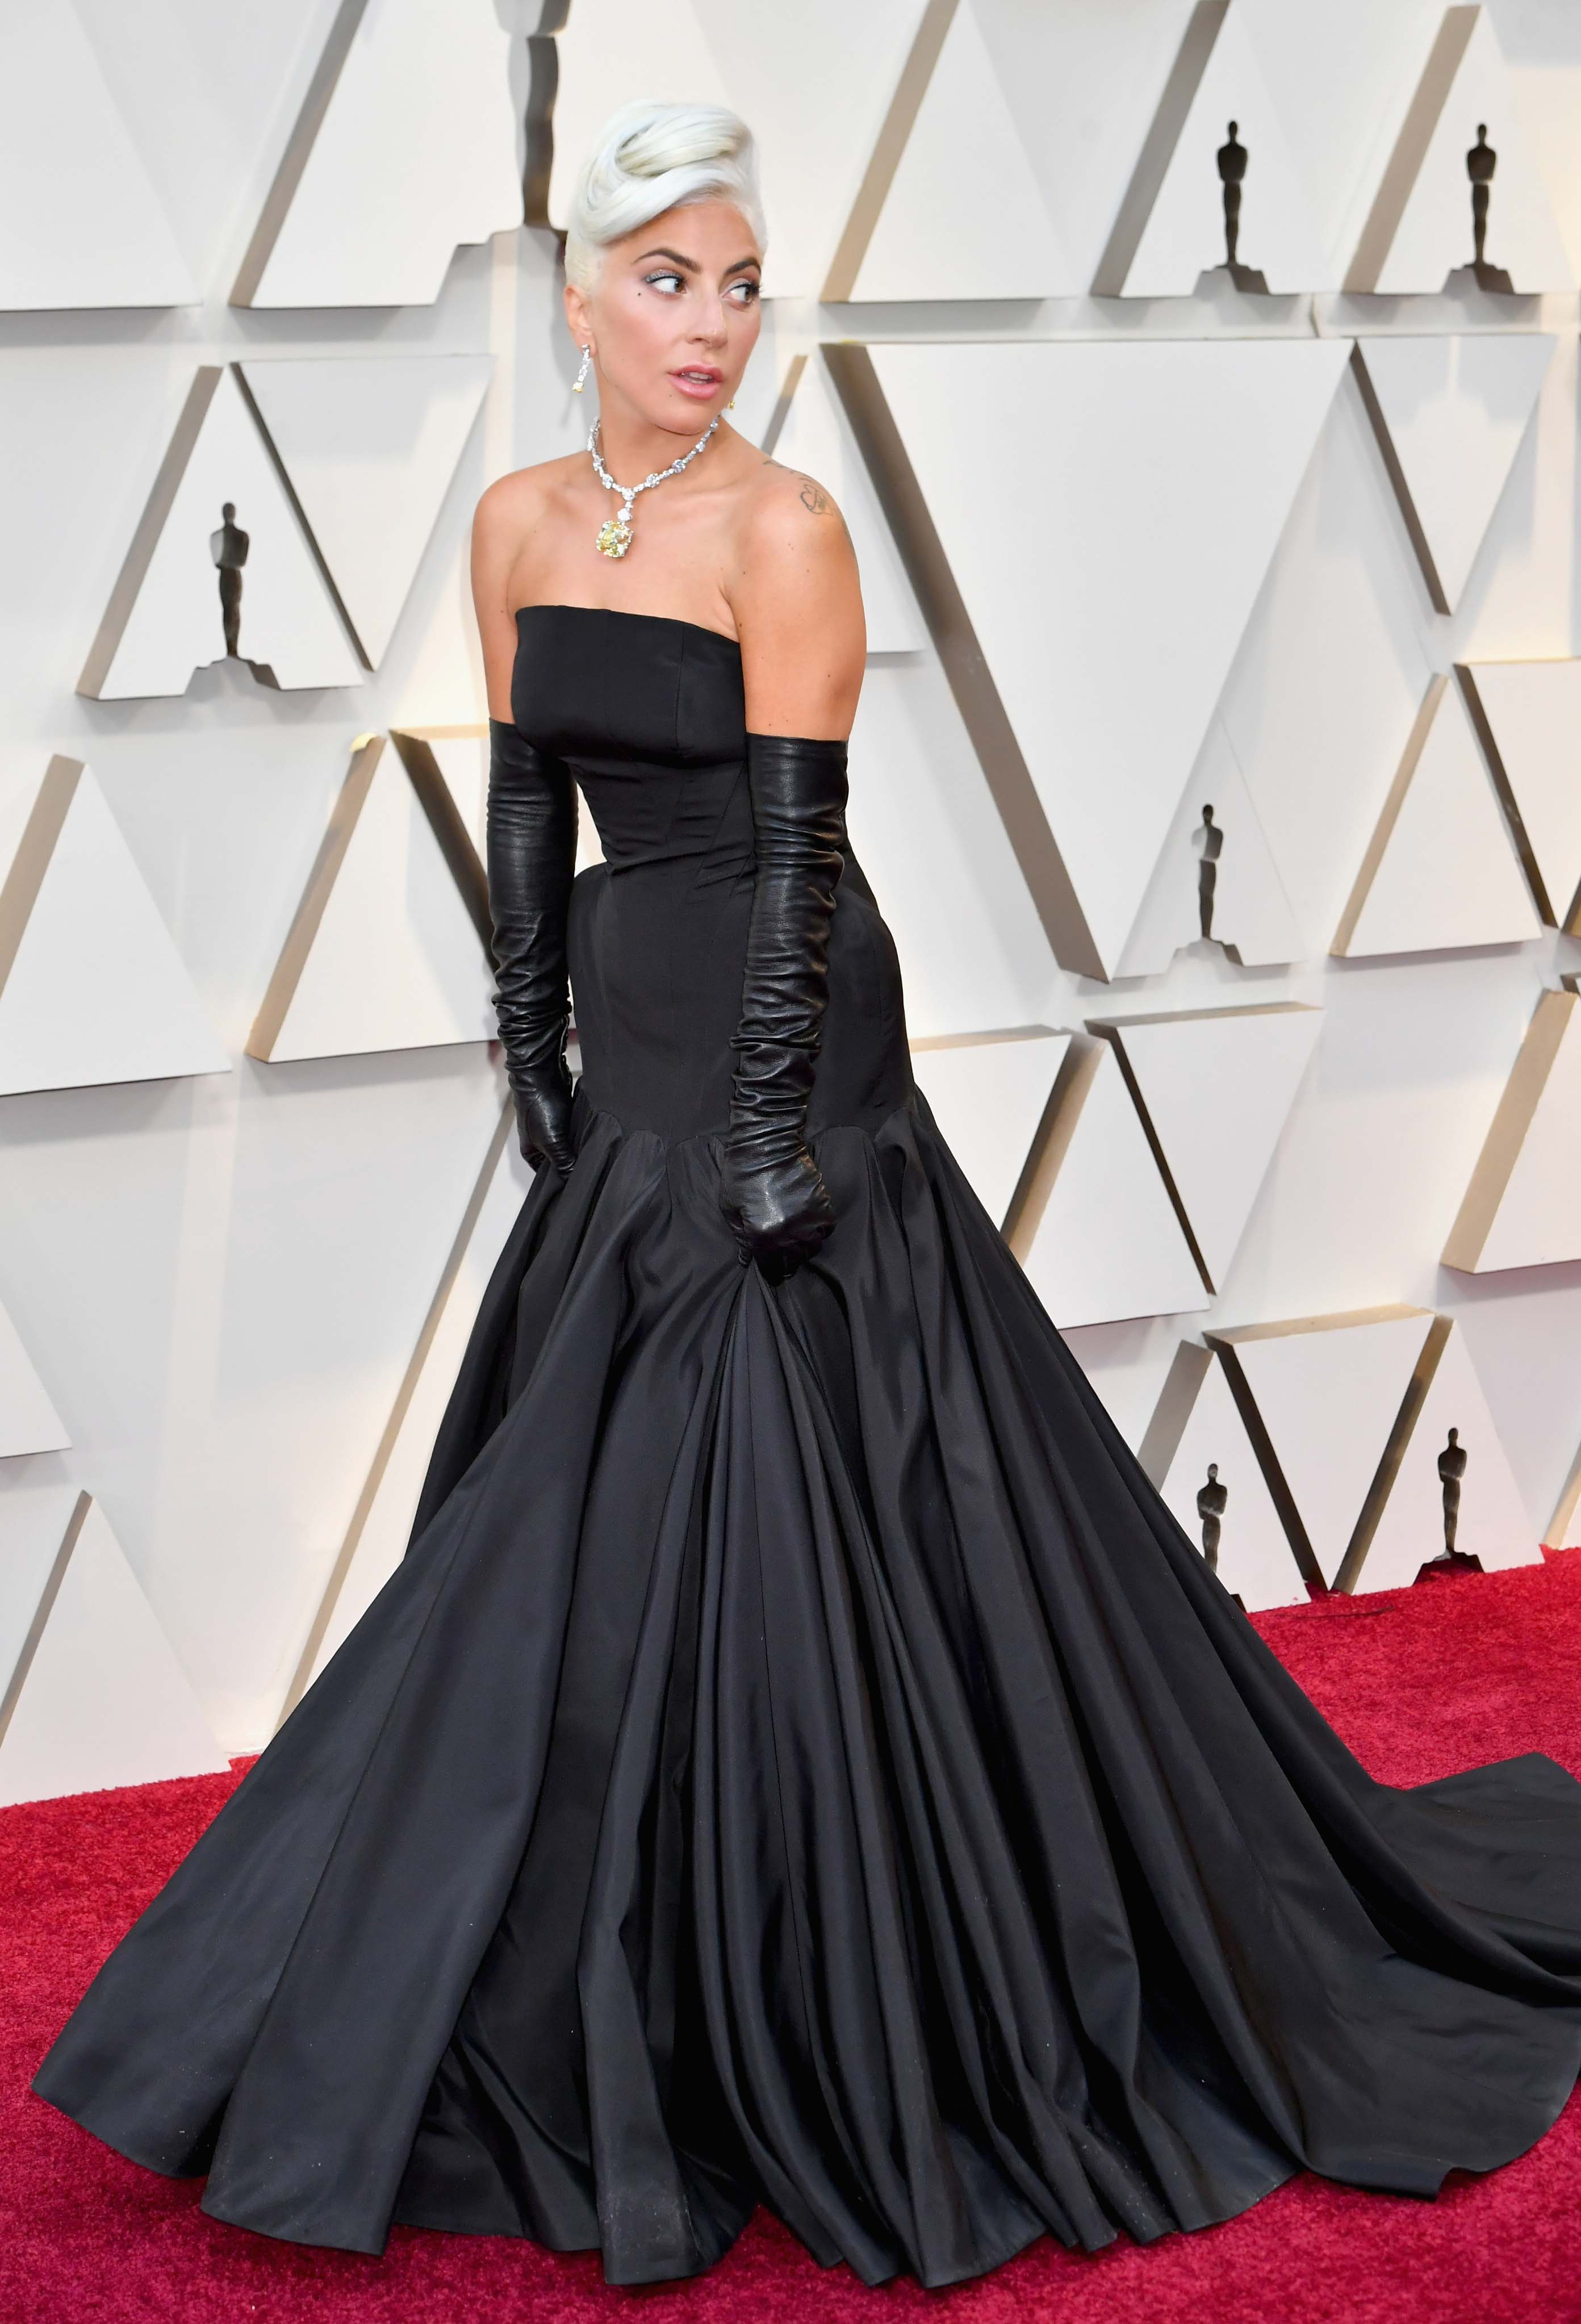 The Oscars 2019: Lady Gaga Arrives At The Red Carpet | Marie